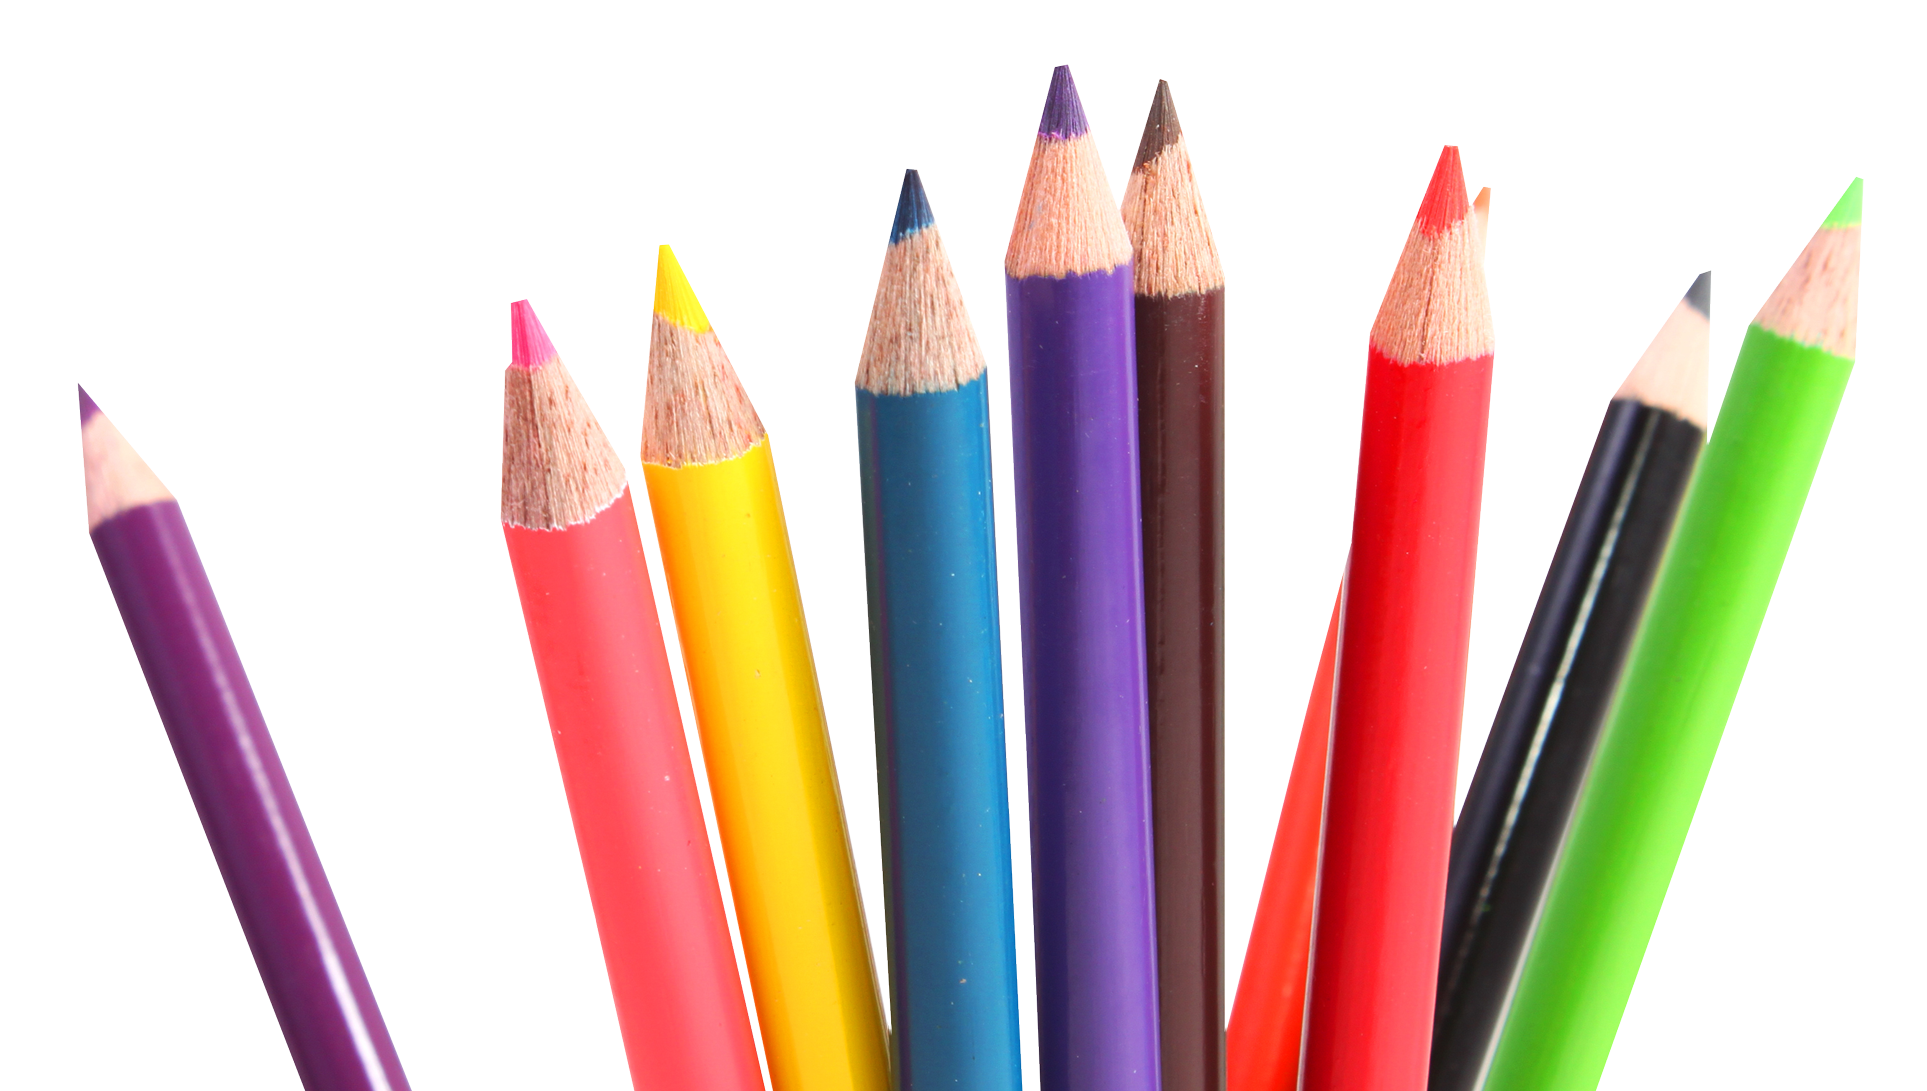 Multicolor crayons png image. Crayon clipart transparent background